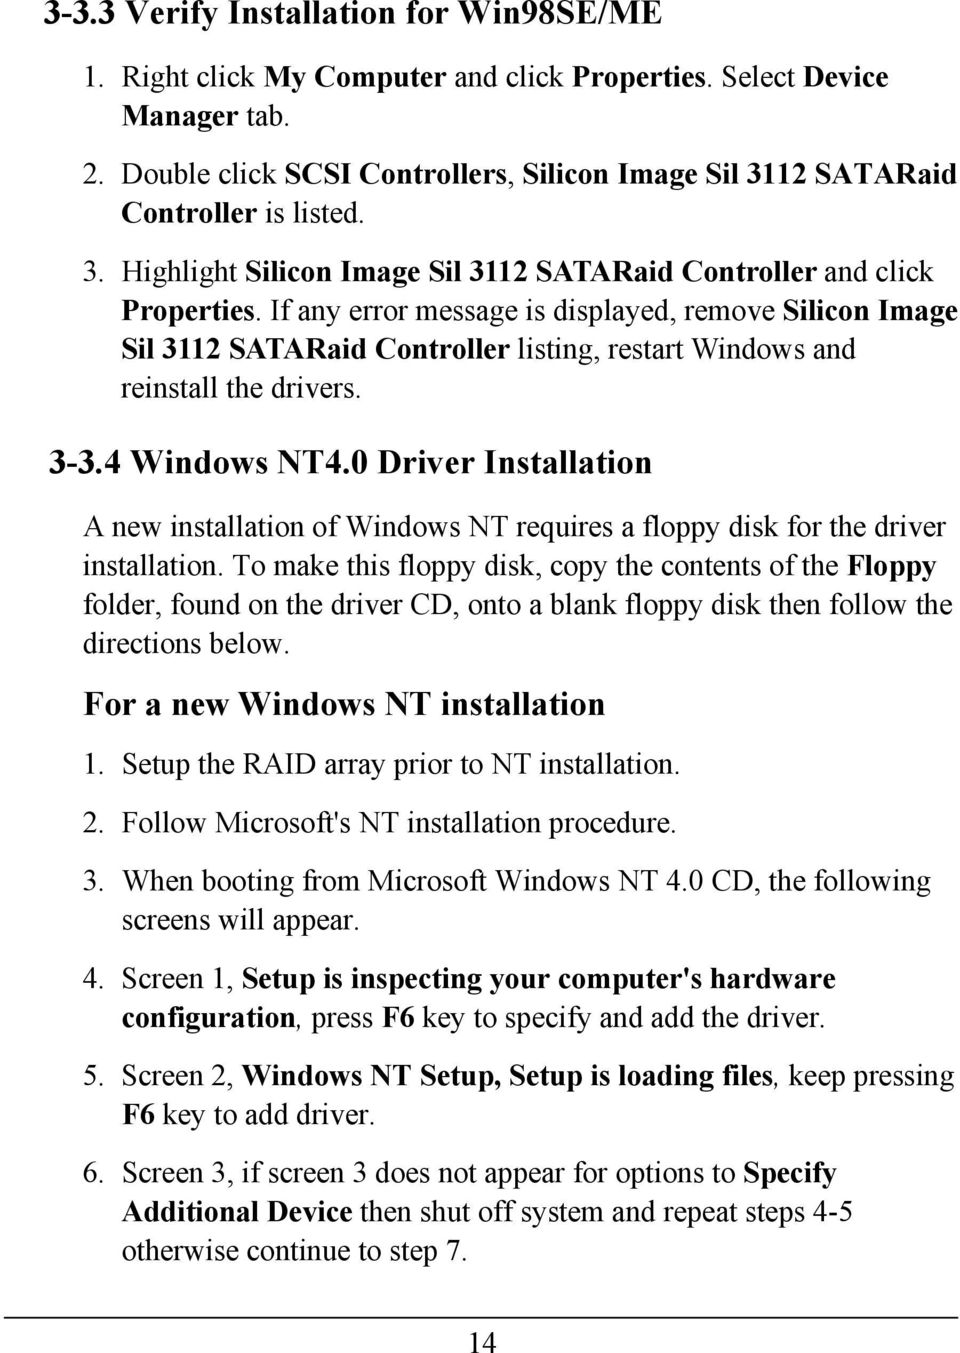 If any error message is displayed, remove Silicon Image Sil 3112 SATARaid Controller listing, restart Windows and reinstall the drivers. 3-3.4 Windows NT4.